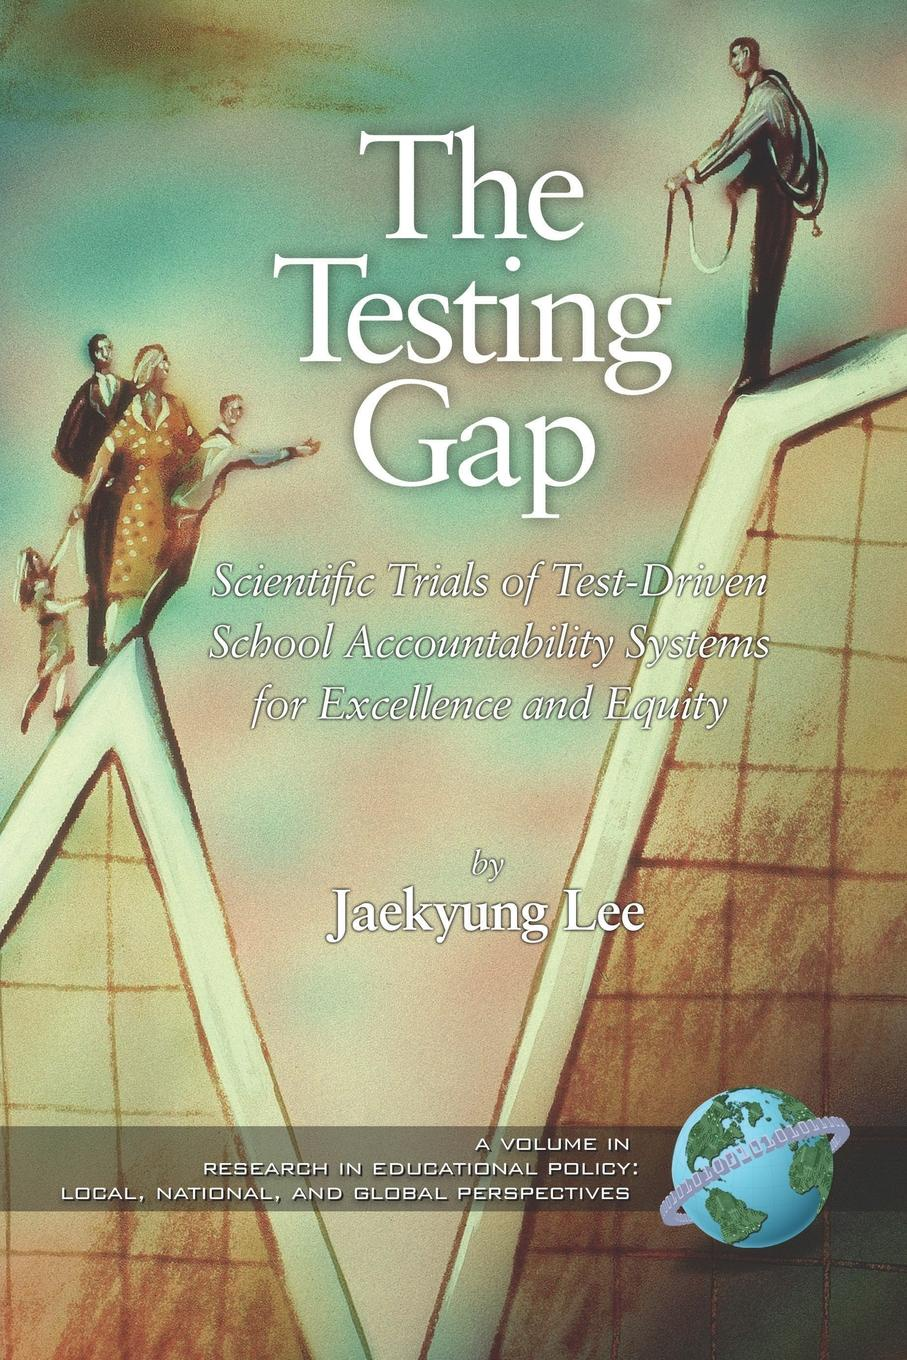 The Testing Gap. Scientific Trials of Test Driven School Accountability Systems for Execellence and Equity (PB) mohammad salehi validation of a high stakes test